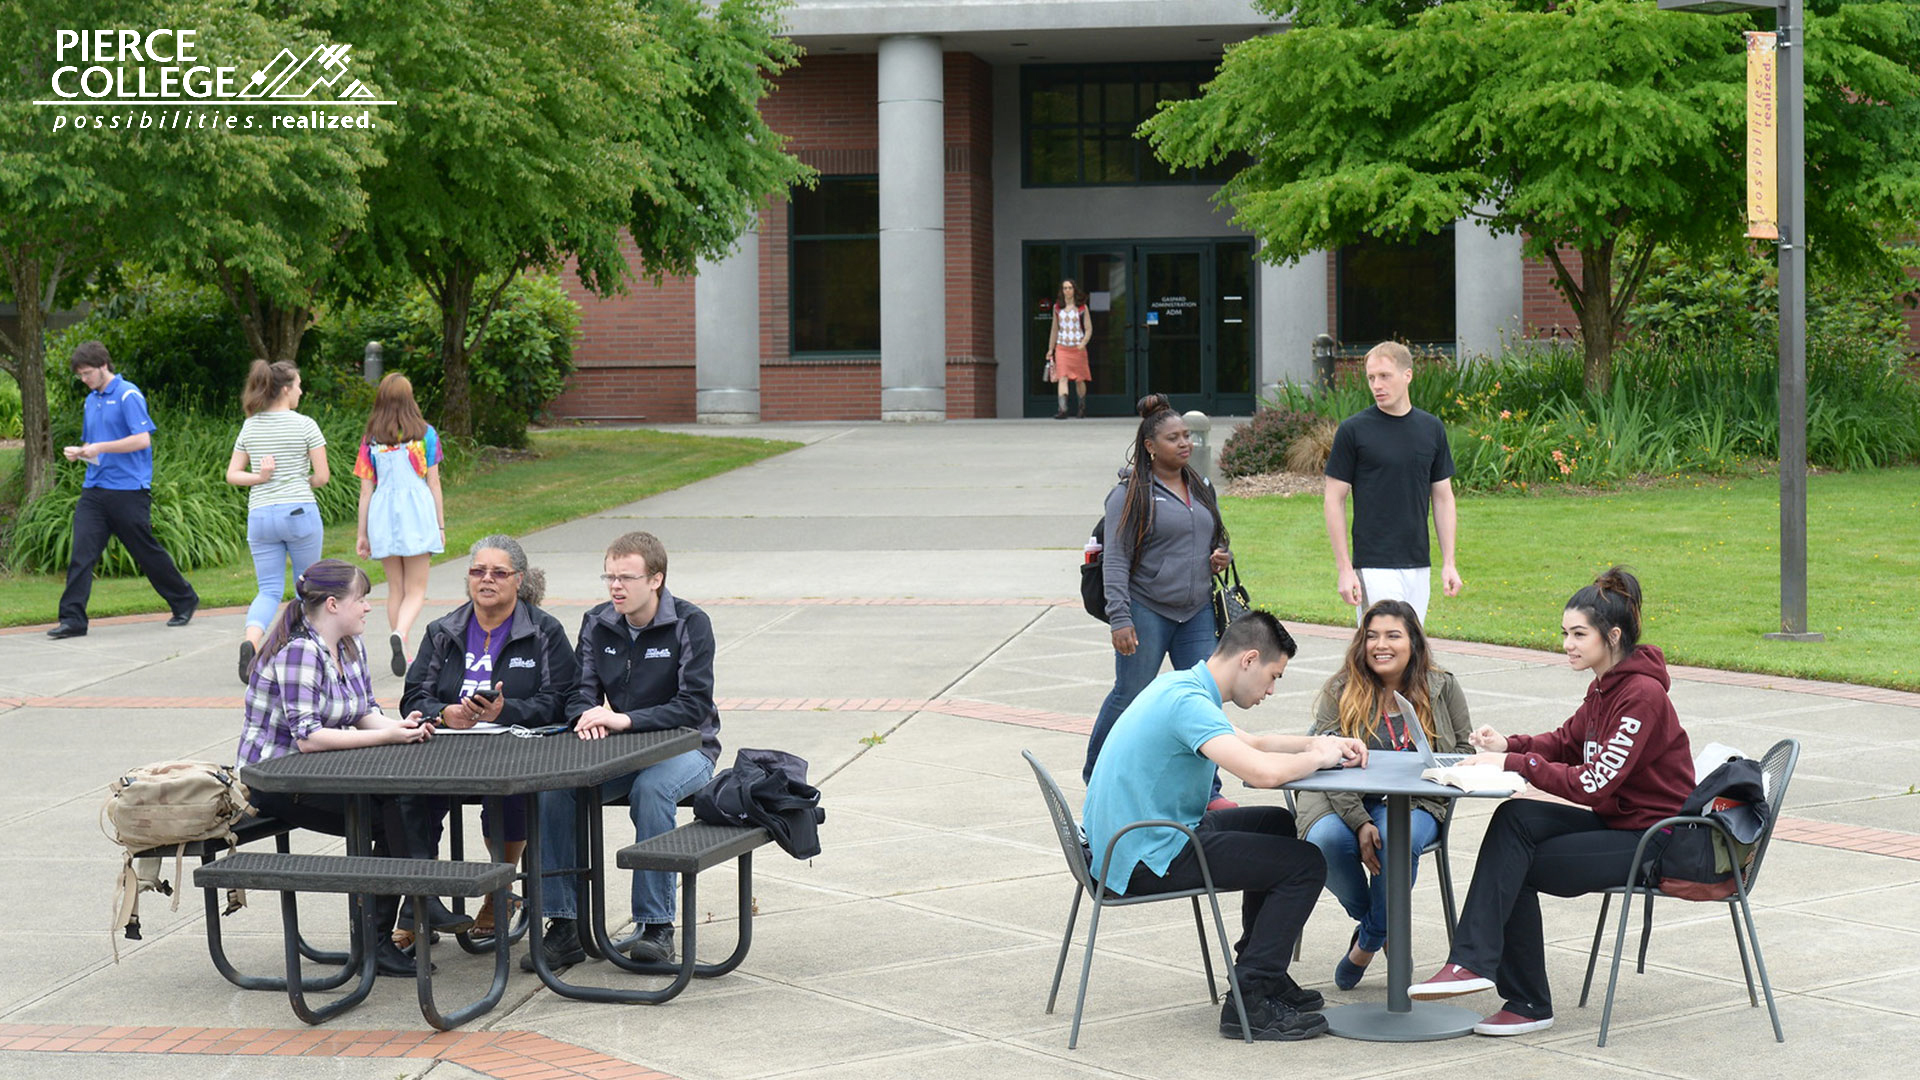 Pierce College students sitting at tables outside